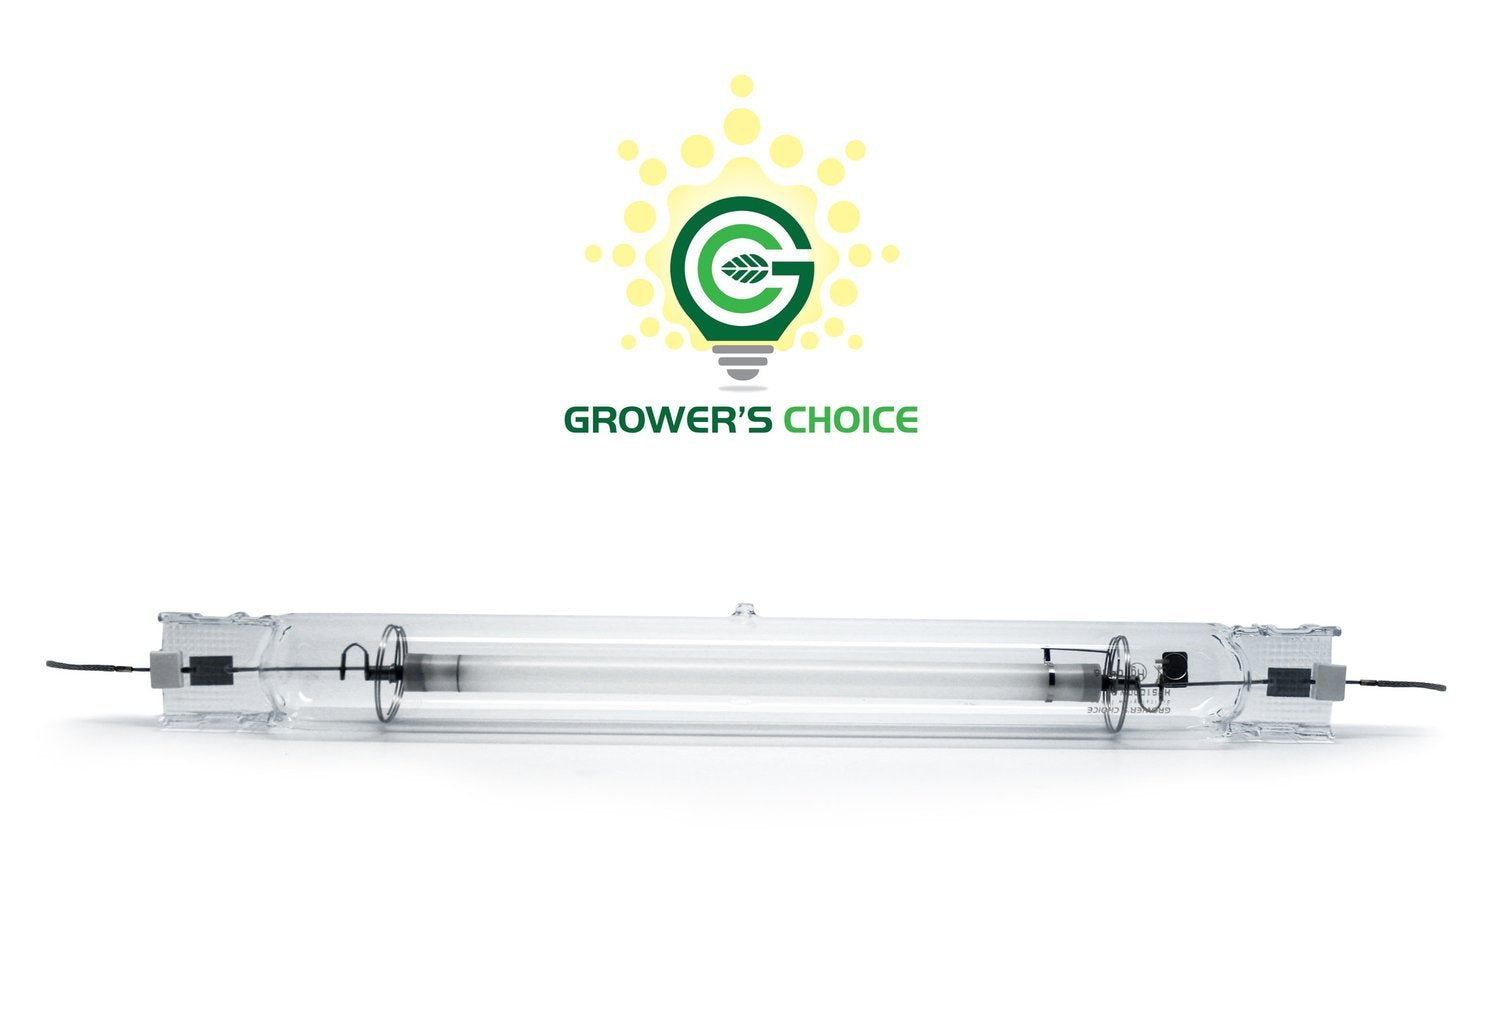 Grower's Choice 1000W HID Horticultural Grow Light Fixture - Hydroponics Greenhouse